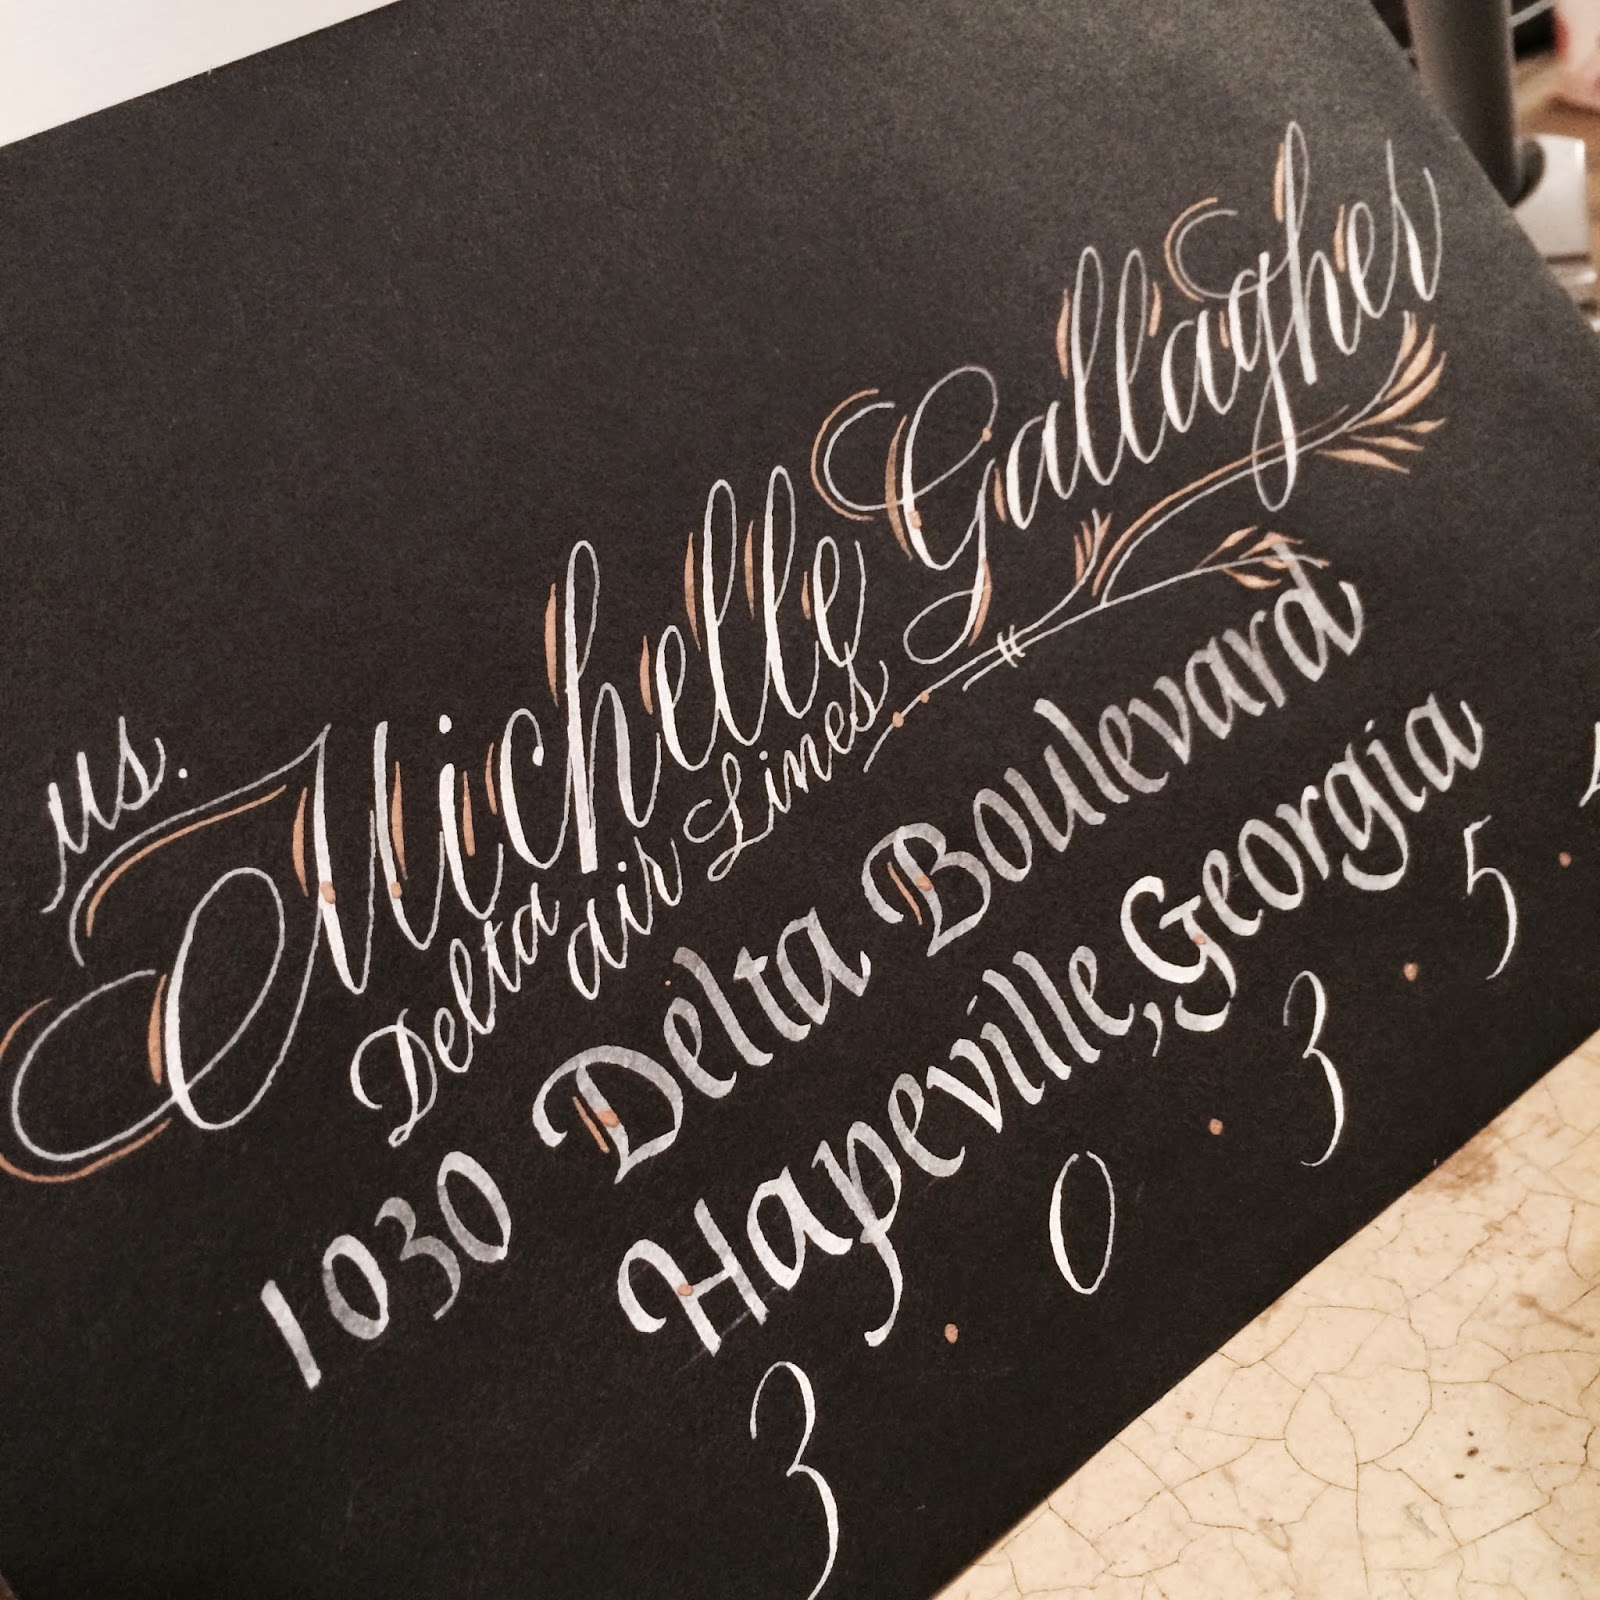 Anne elser calligraphy pricing Anne elser calligraphy